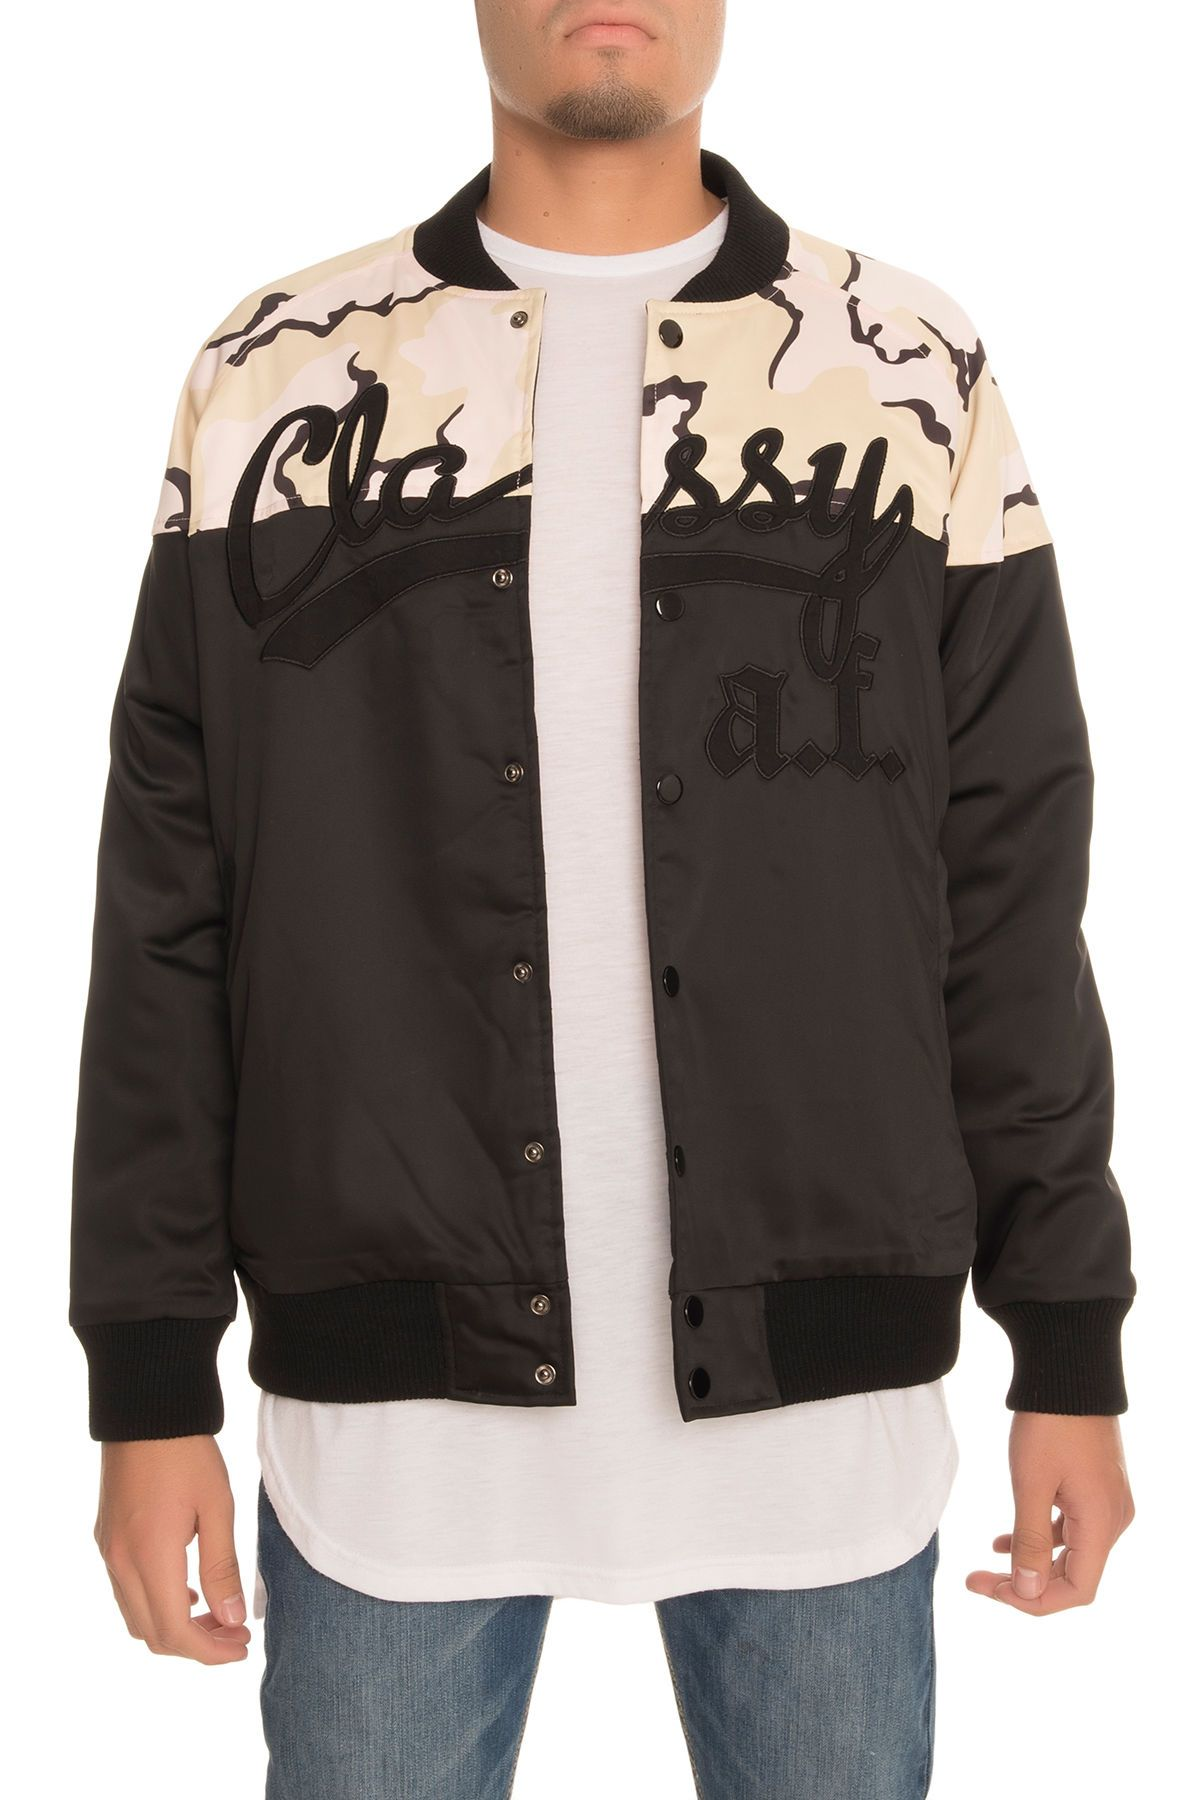 Classy A.F. Satin Baseball Jacket in Black and Camo